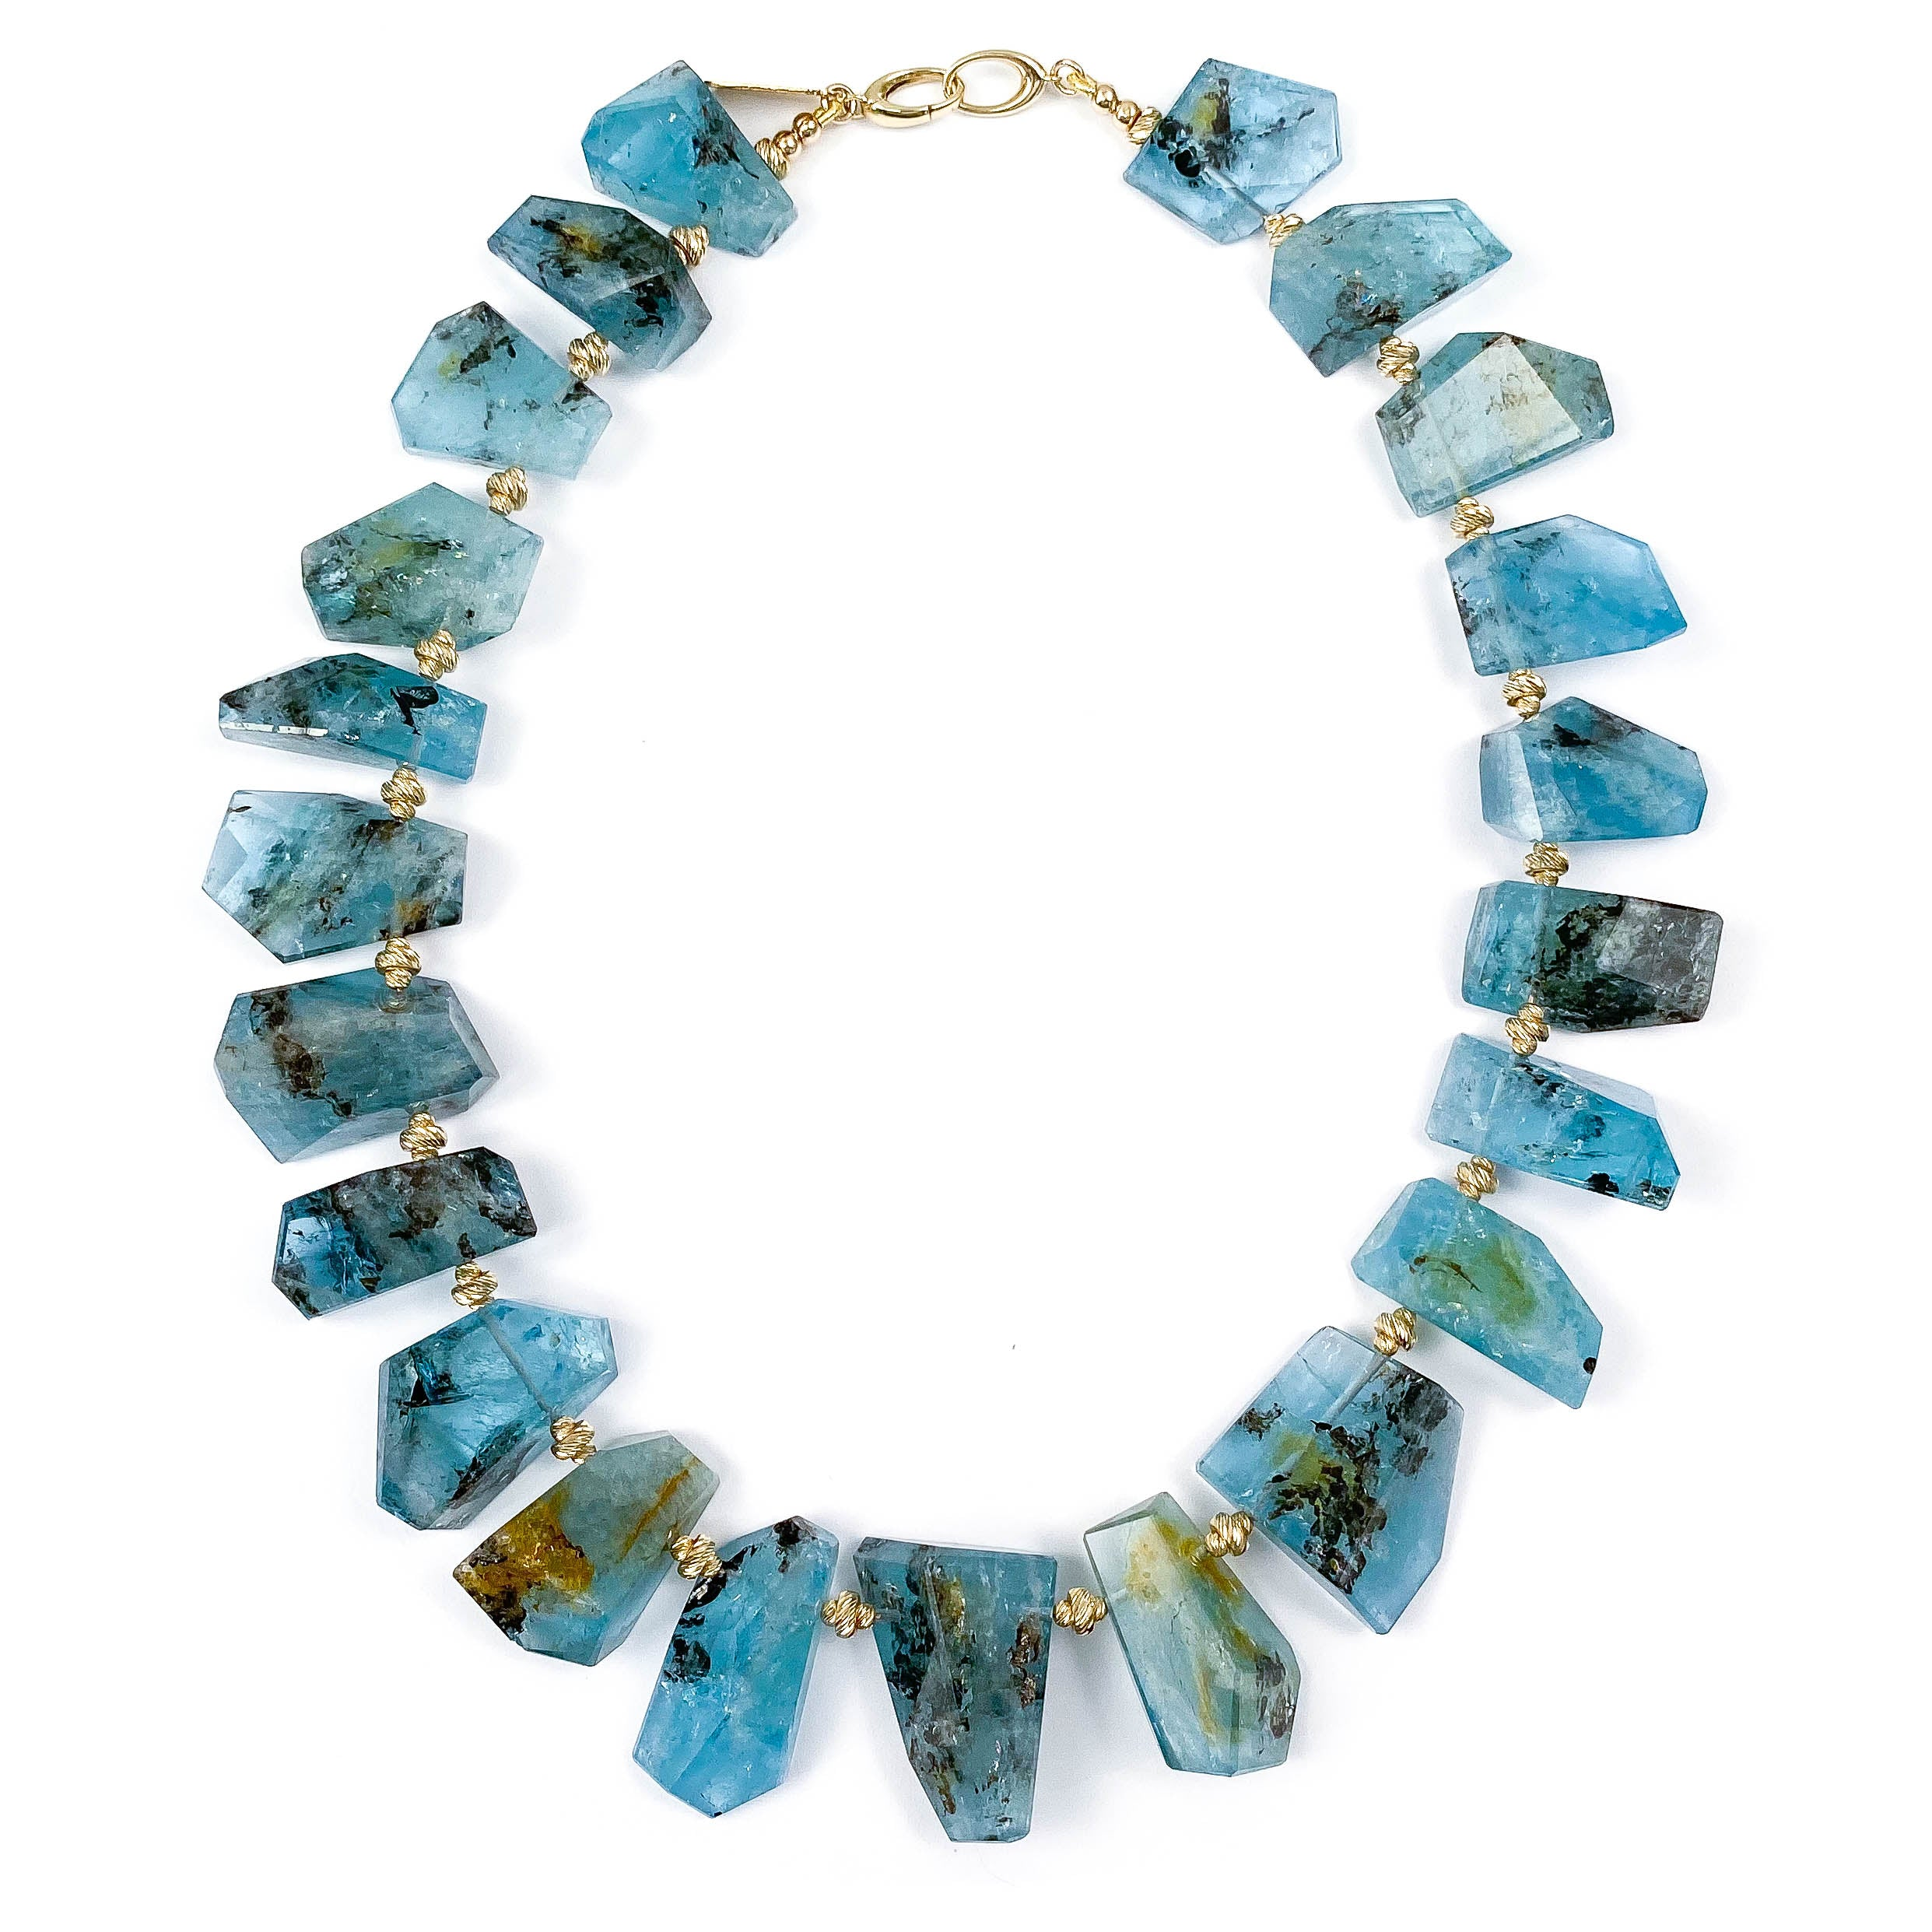 14k Gold AAA Quality Rutilated Aquamarine Necklace